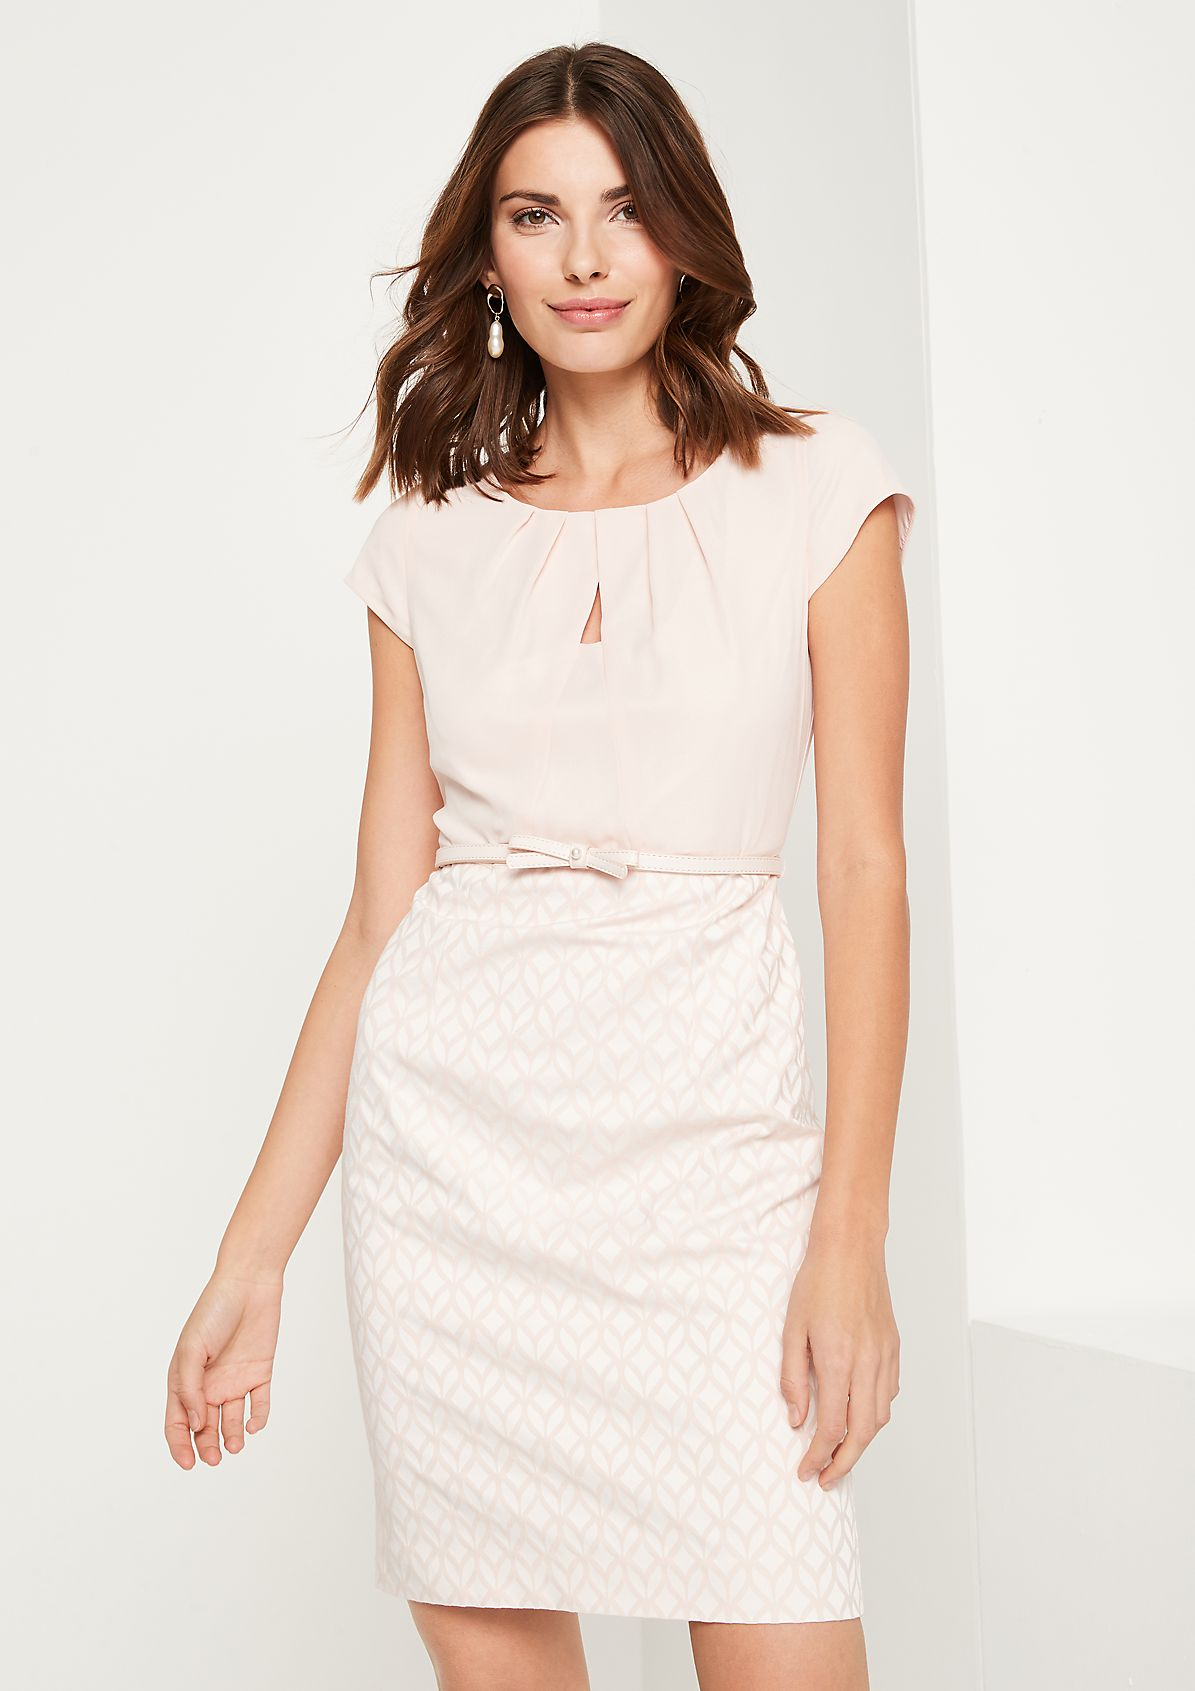 Sheath dress with a jacquard pattern from comma